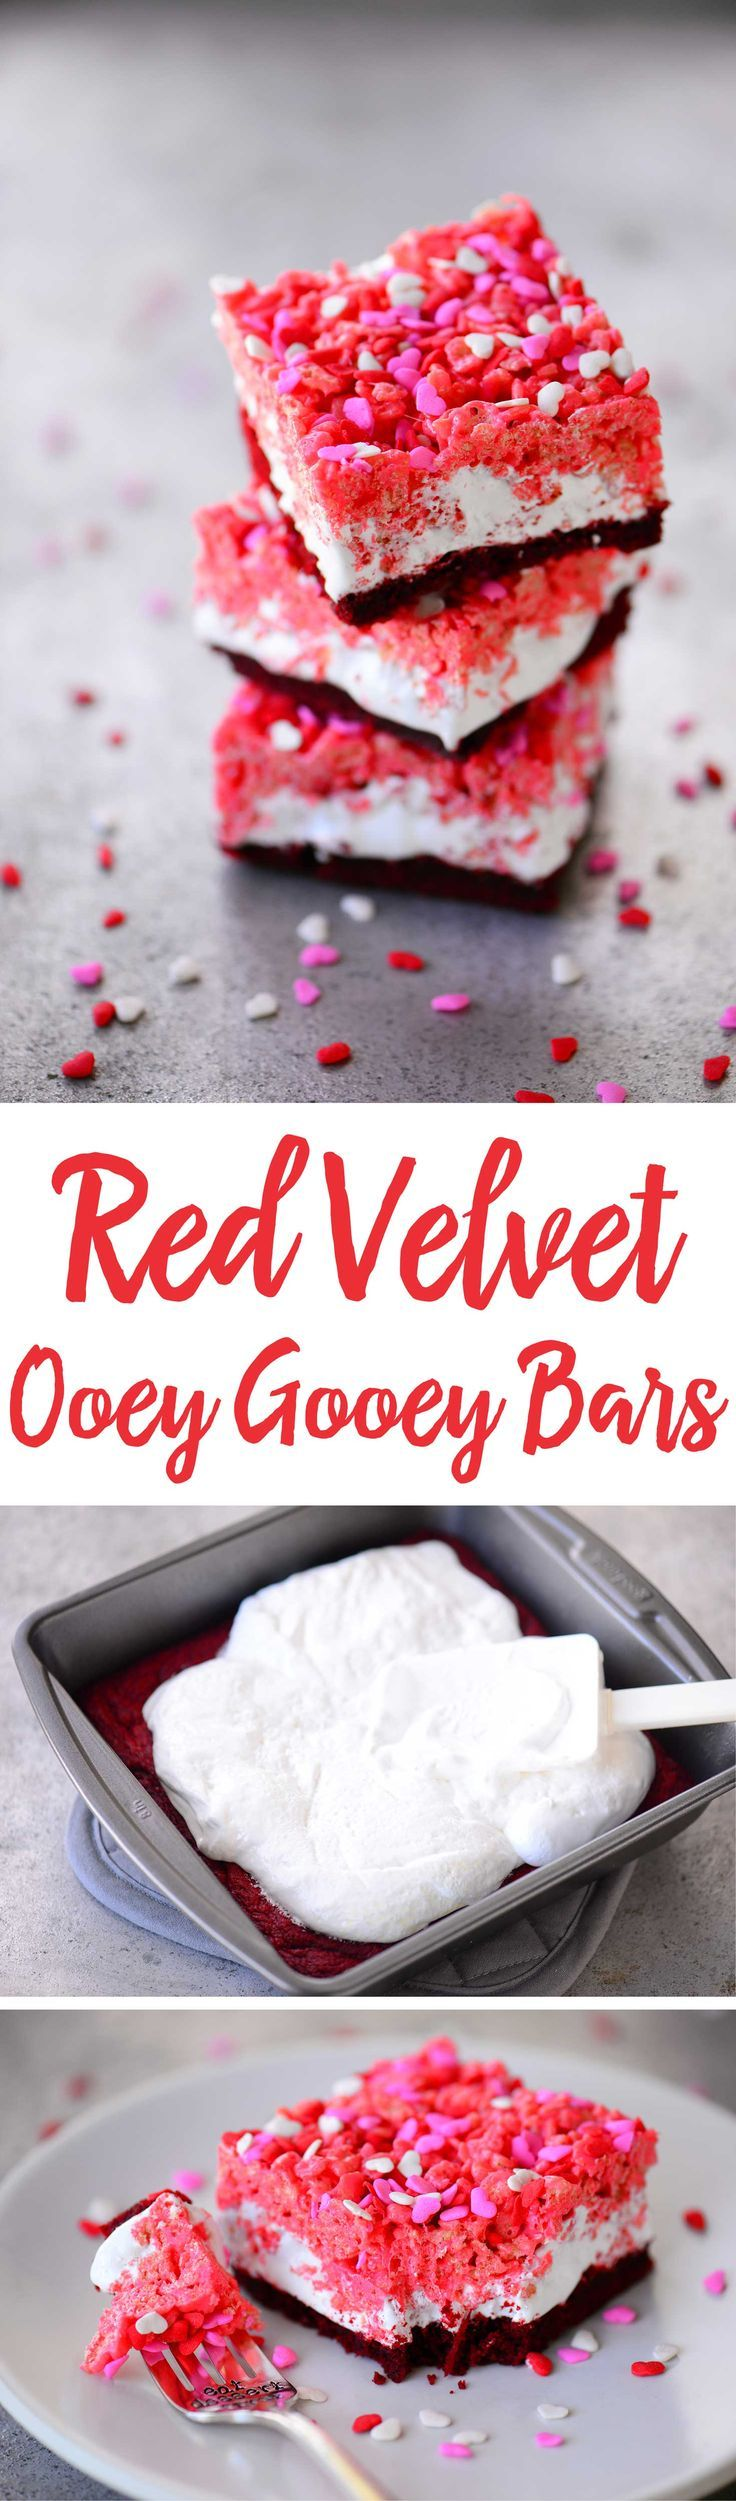 Red Velvet Ooey Gooey Bars have a red velvet cake crust with marshmallow cream and rice krispies treats on top. A Valentine's Day dessert loved by kids of all ages.